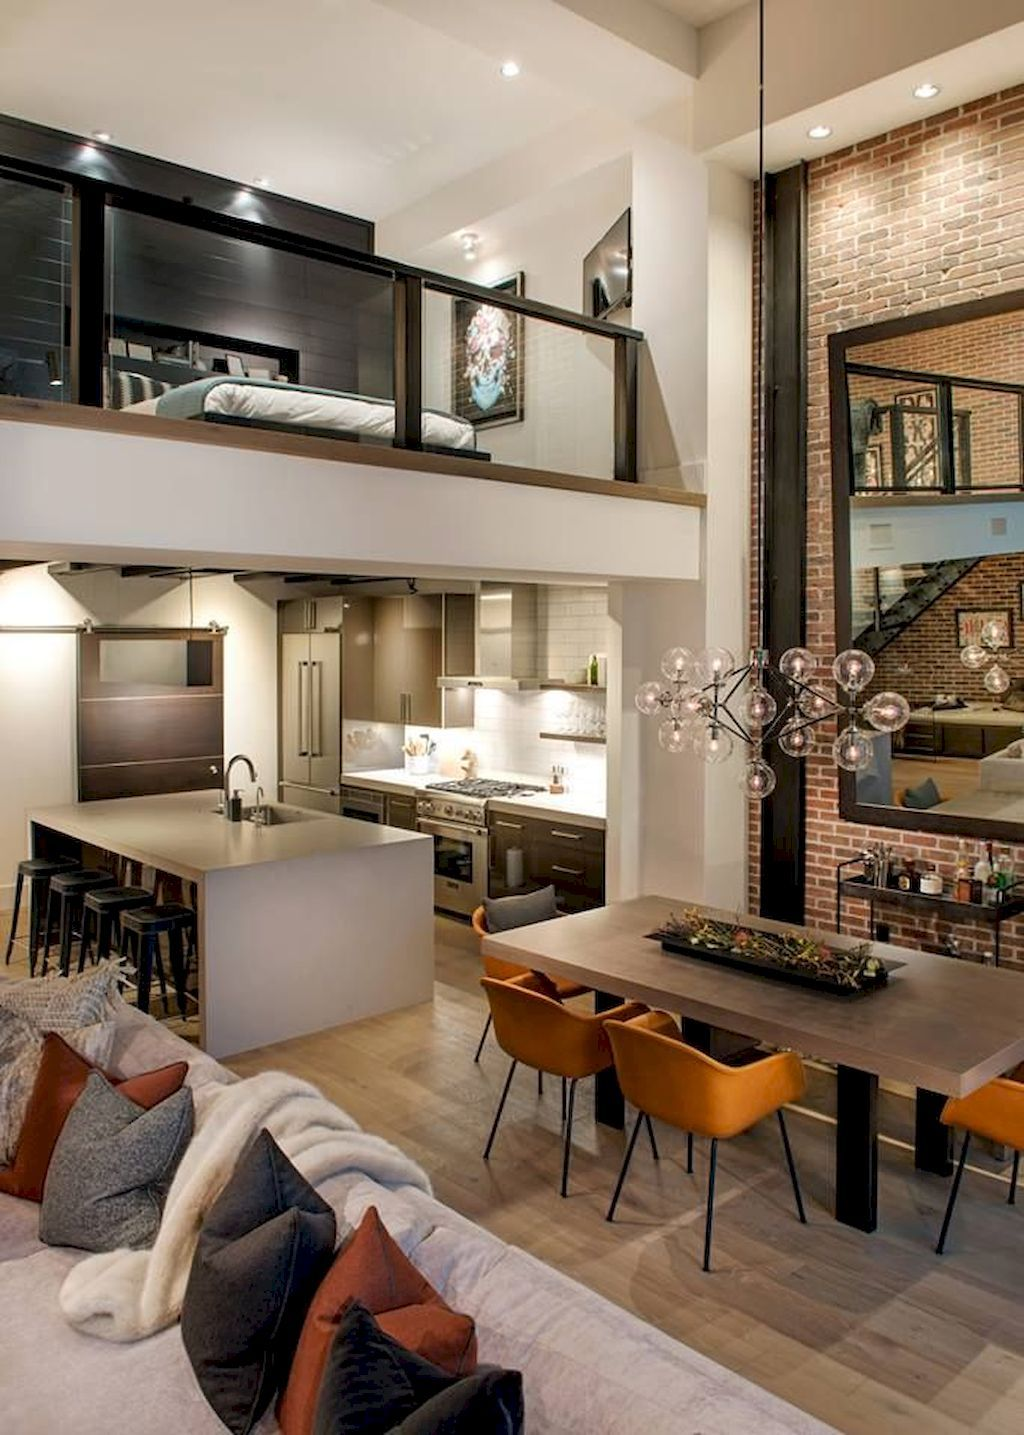 Design hotel badkamer keuken ideeen lofts zelfgemaakte huisdecoratie residentiele architectuur also beautiful stairs home styling in pinterest interior rh